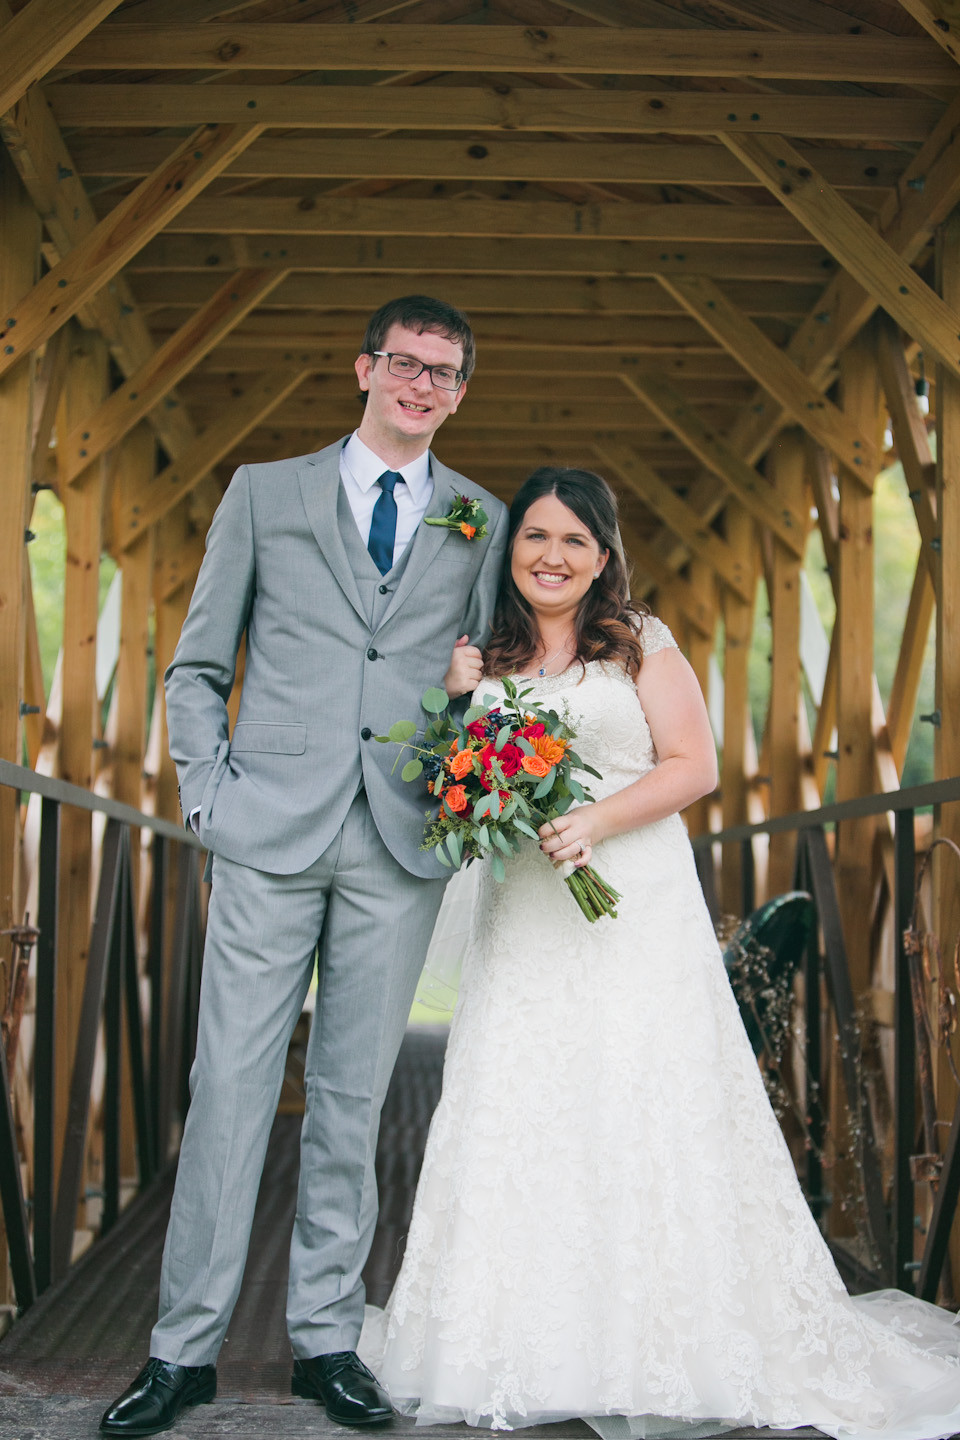 wedding photos on a wooden bridge